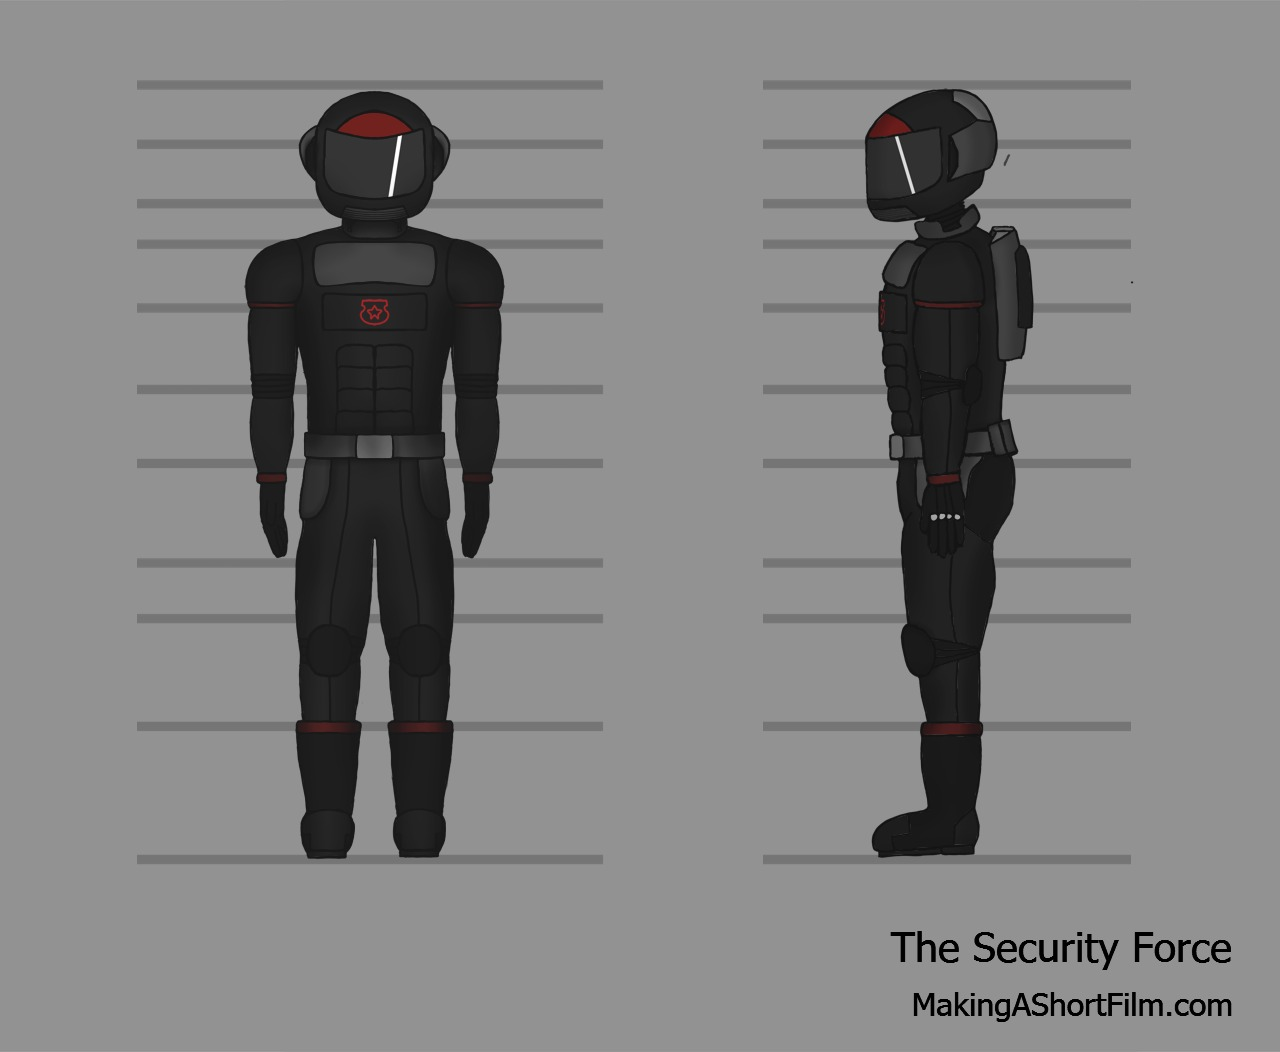 The completed Security Force concept art